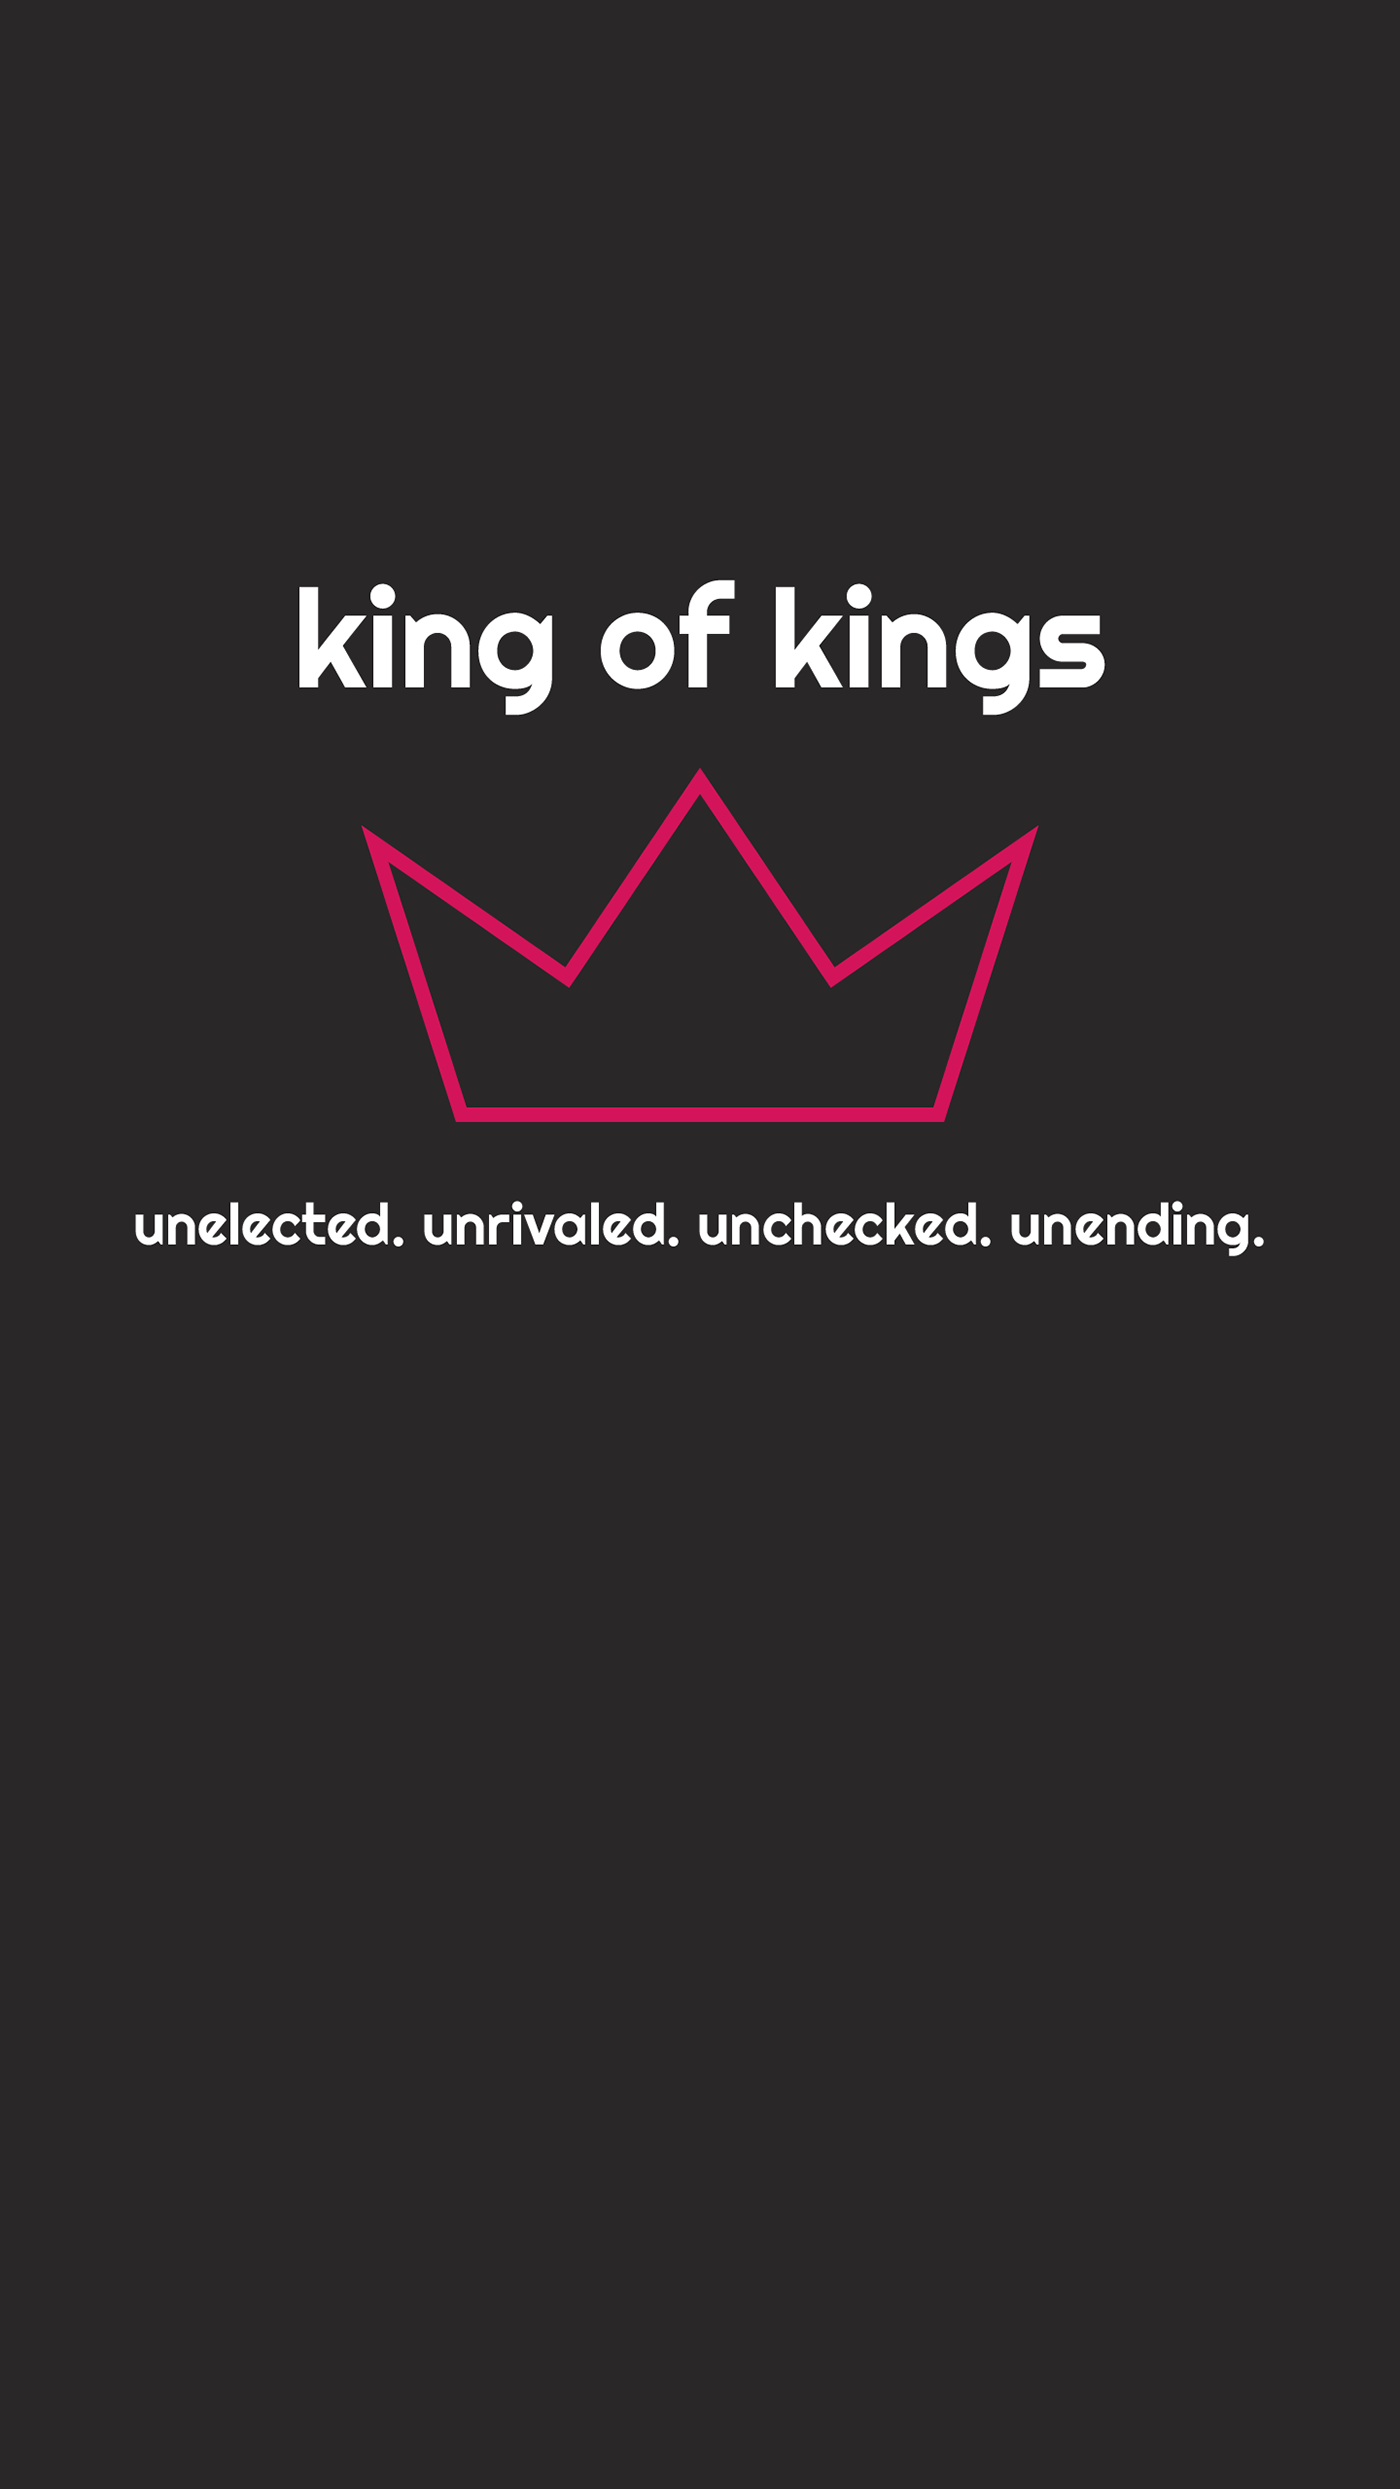 King Of Kings Wallpaper For Phones 1440 X 2560